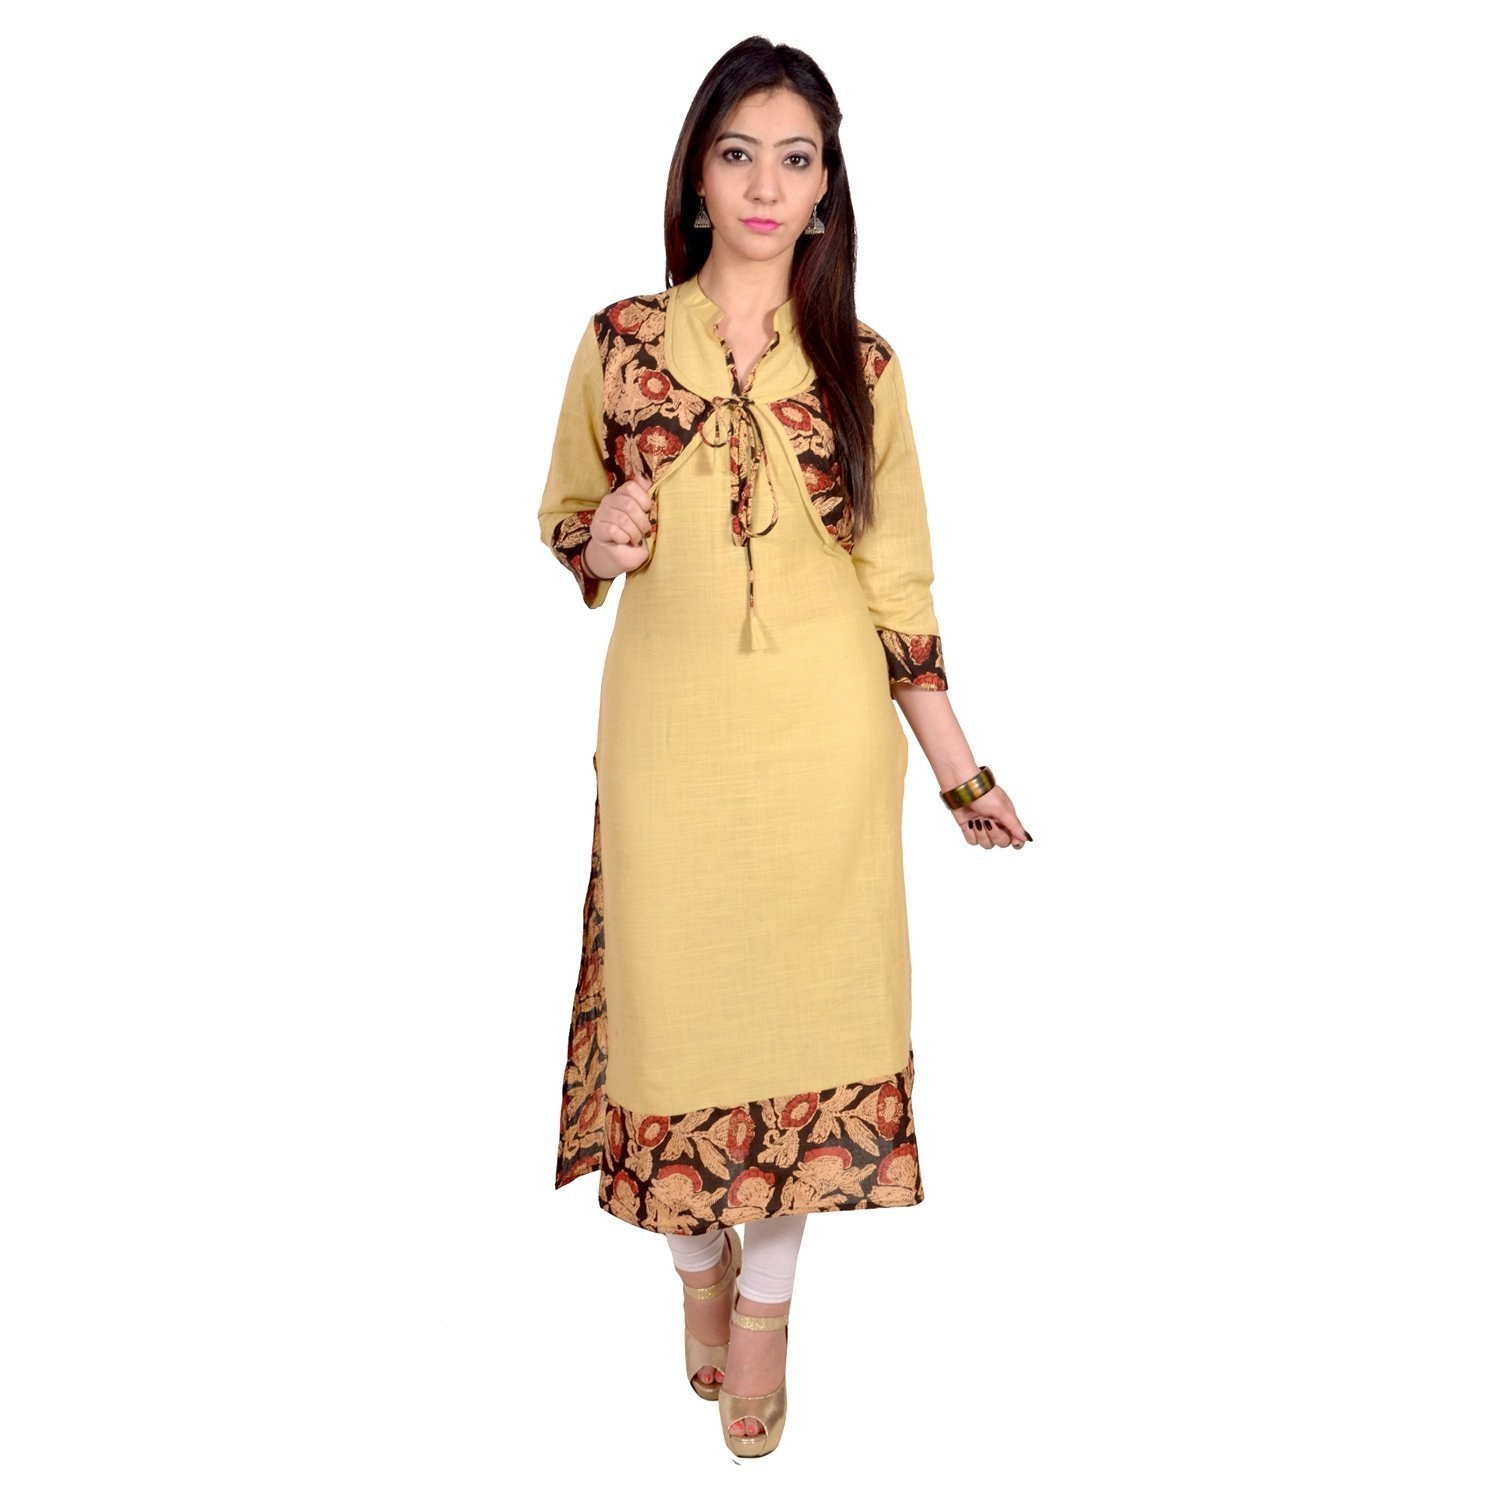 Chichi Indian Women Kurta Kurti 3/4 Sleeve Large Size Plain with Attached Jacket Straight Yellow Top by CHI